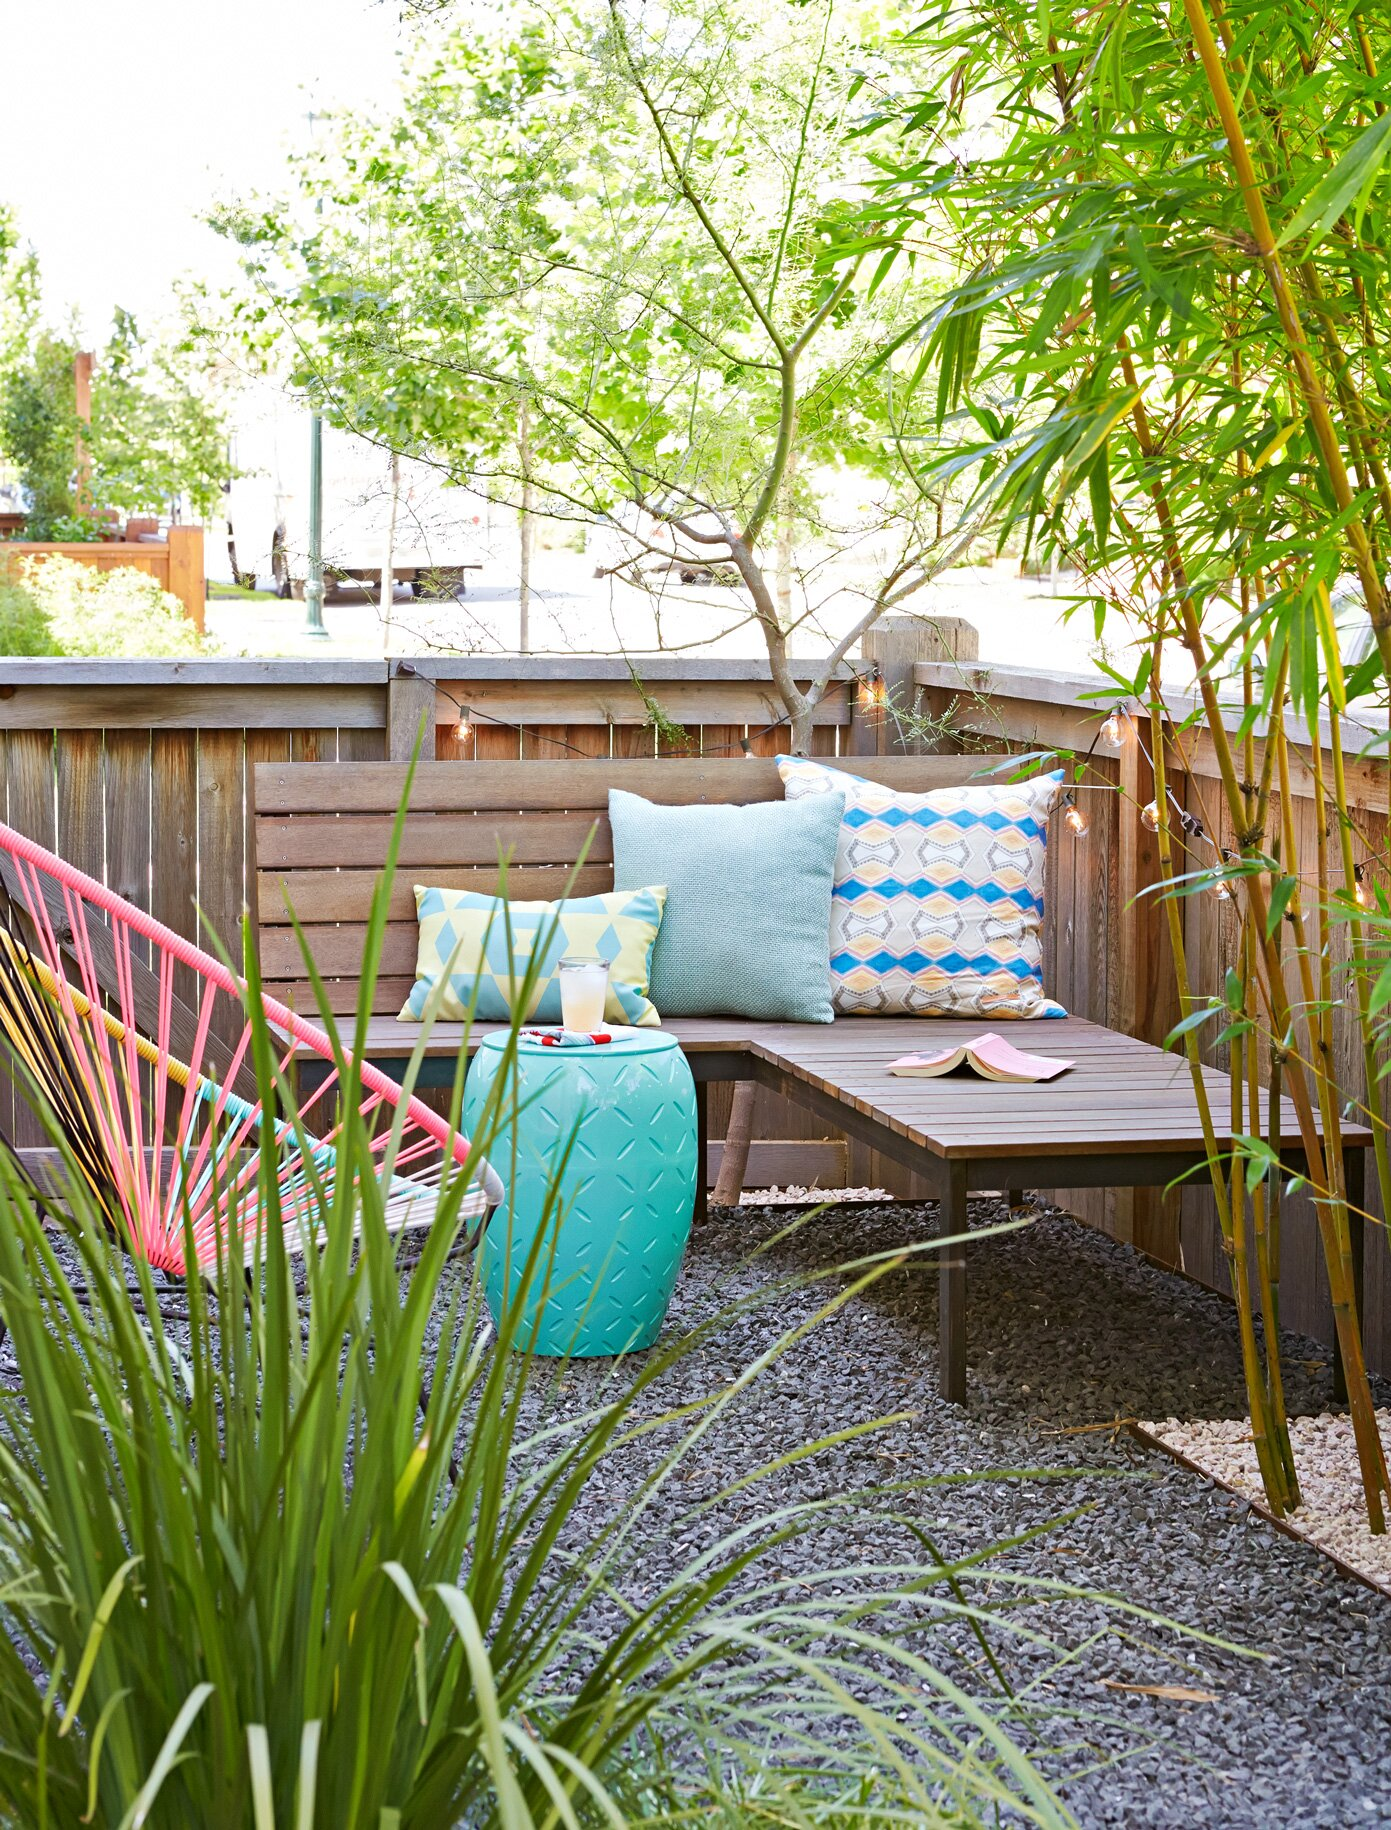 23 Inexpensive Ways to Dress Up Your Backyard on great room lighting ideas, landscaping lighting ideas, living room lighting ideas, fireplace lighting ideas, pool lighting ideas, front porch lighting ideas, wood deck lighting ideas, hot tub lighting ideas, sunroom lighting ideas, gazebo lighting ideas, kitchen lighting ideas, fire pit lighting ideas, shed lighting ideas, formal dining room lighting ideas, laundry room lighting ideas, home lighting ideas, garage lighting ideas, finished basement lighting ideas,